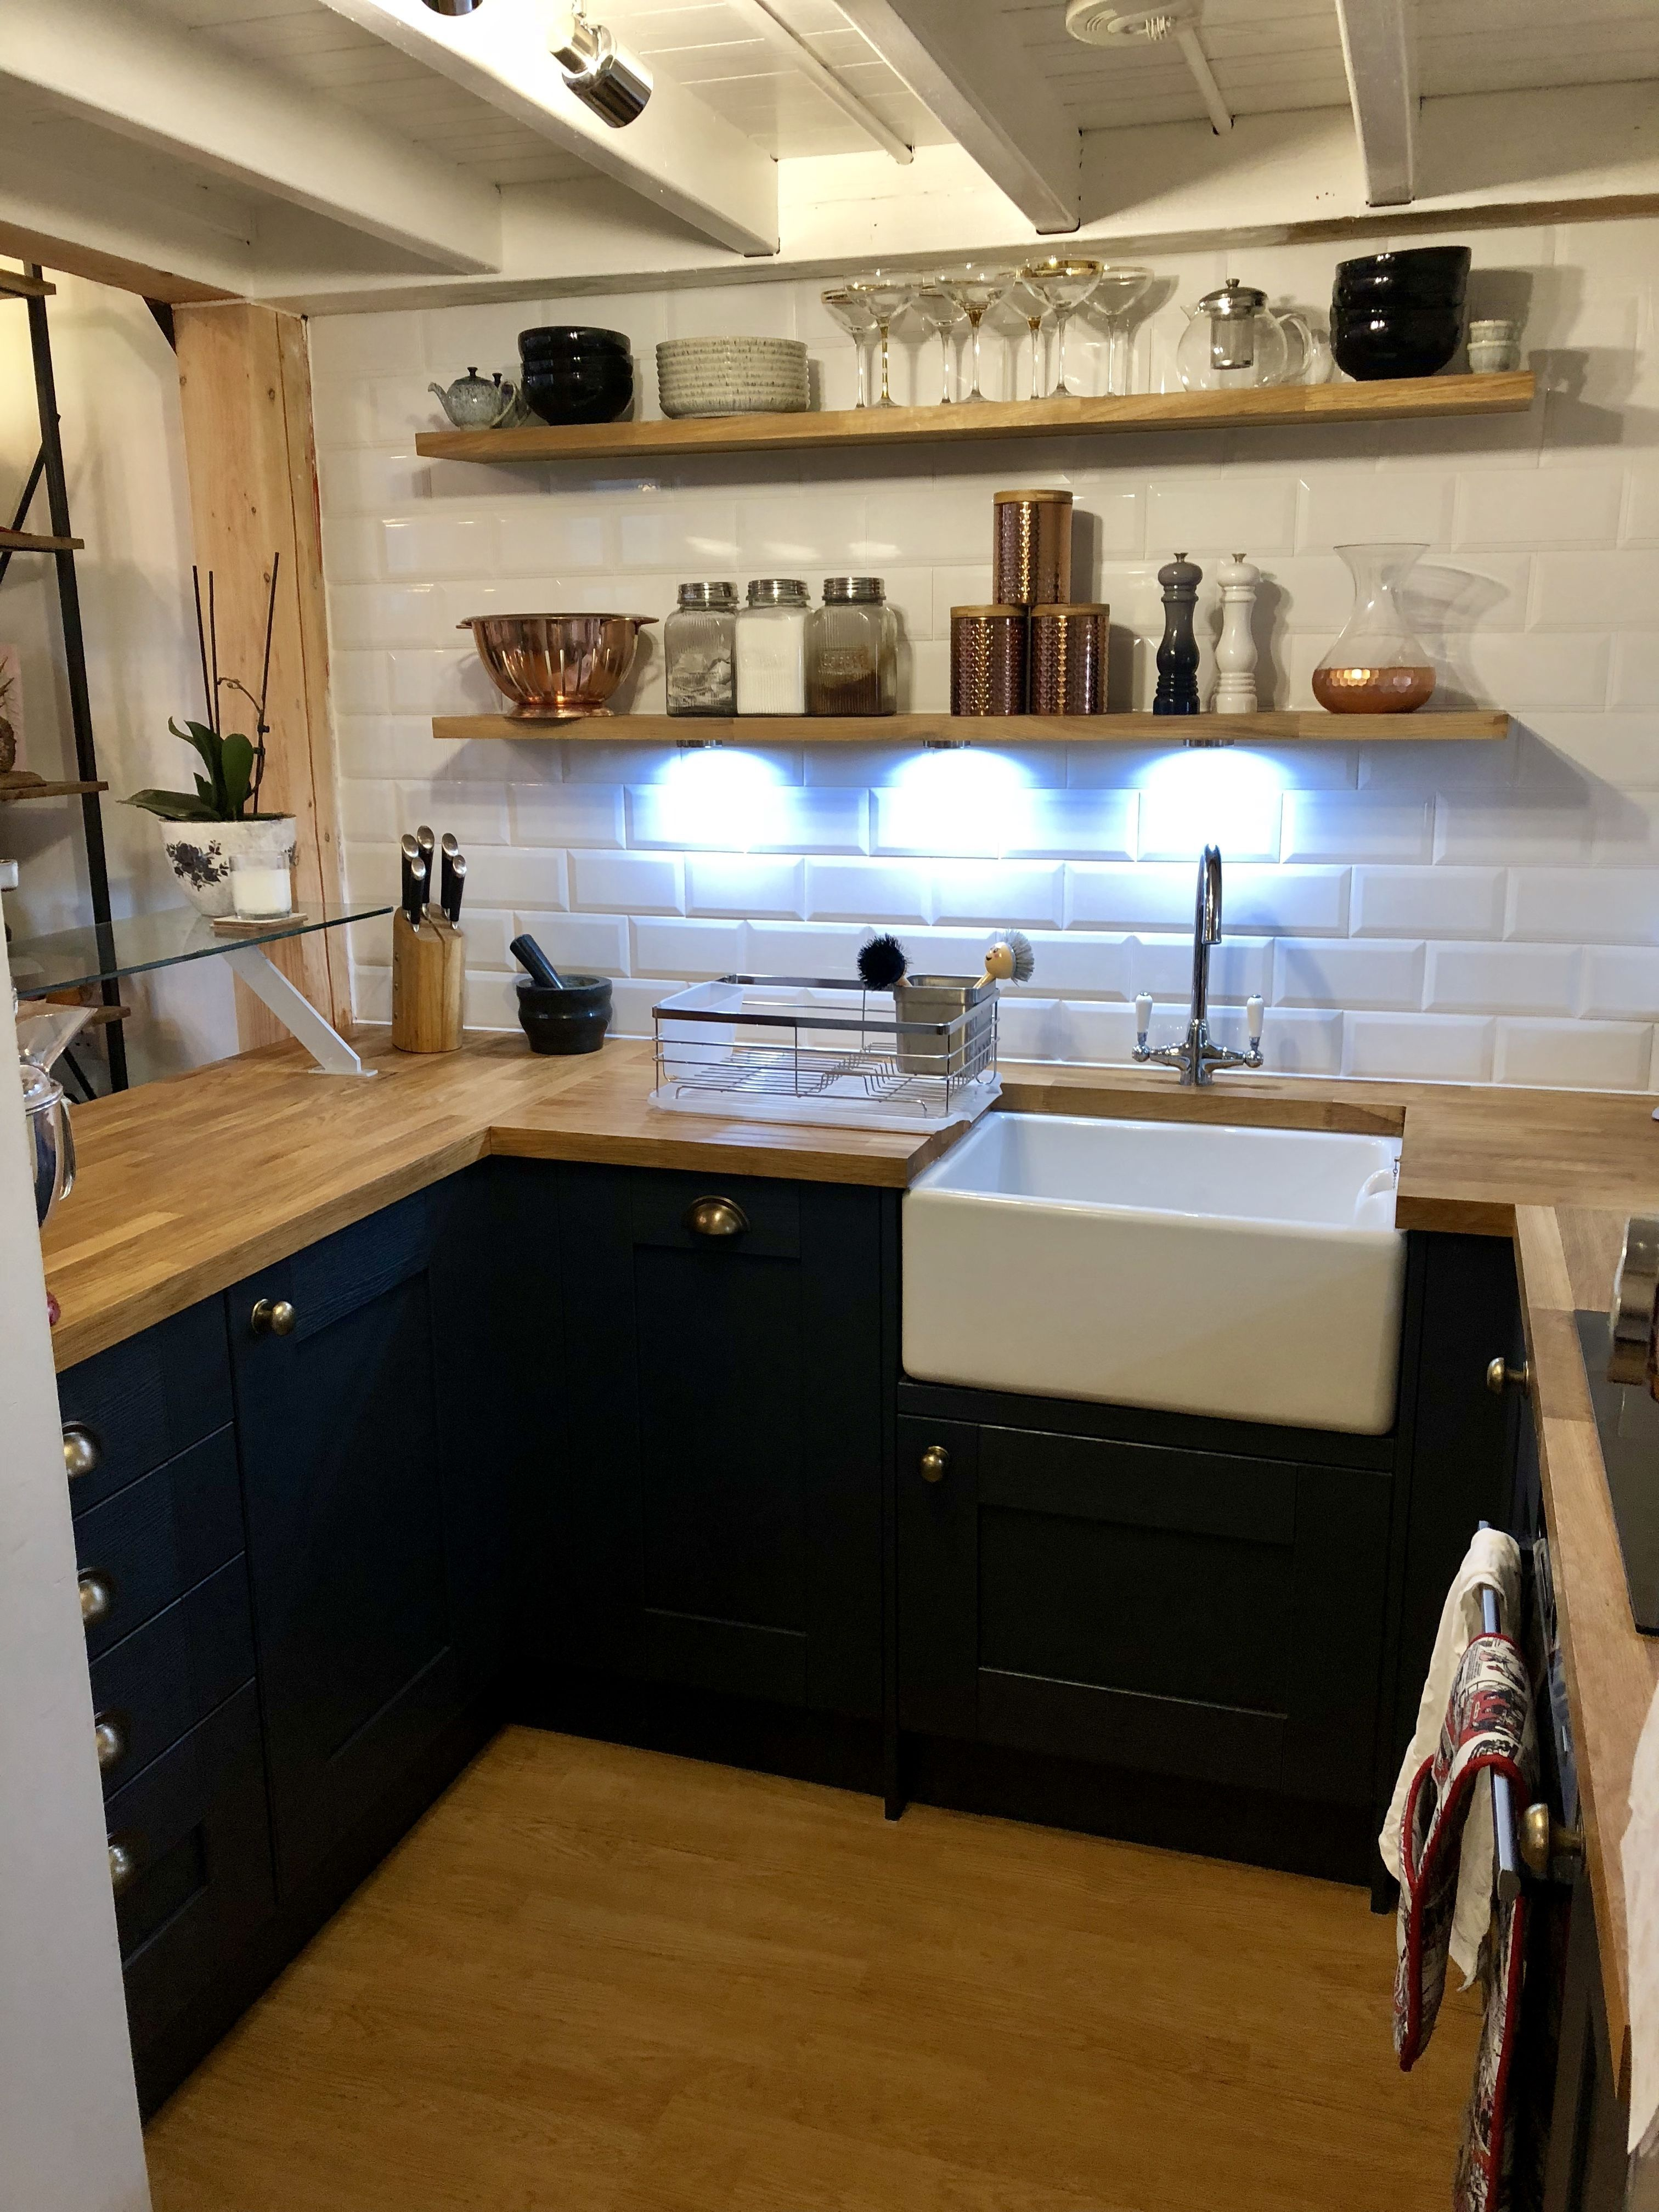 Best Small Kitchen Under Bed Deck Blue And Grey Wickes 400 x 300